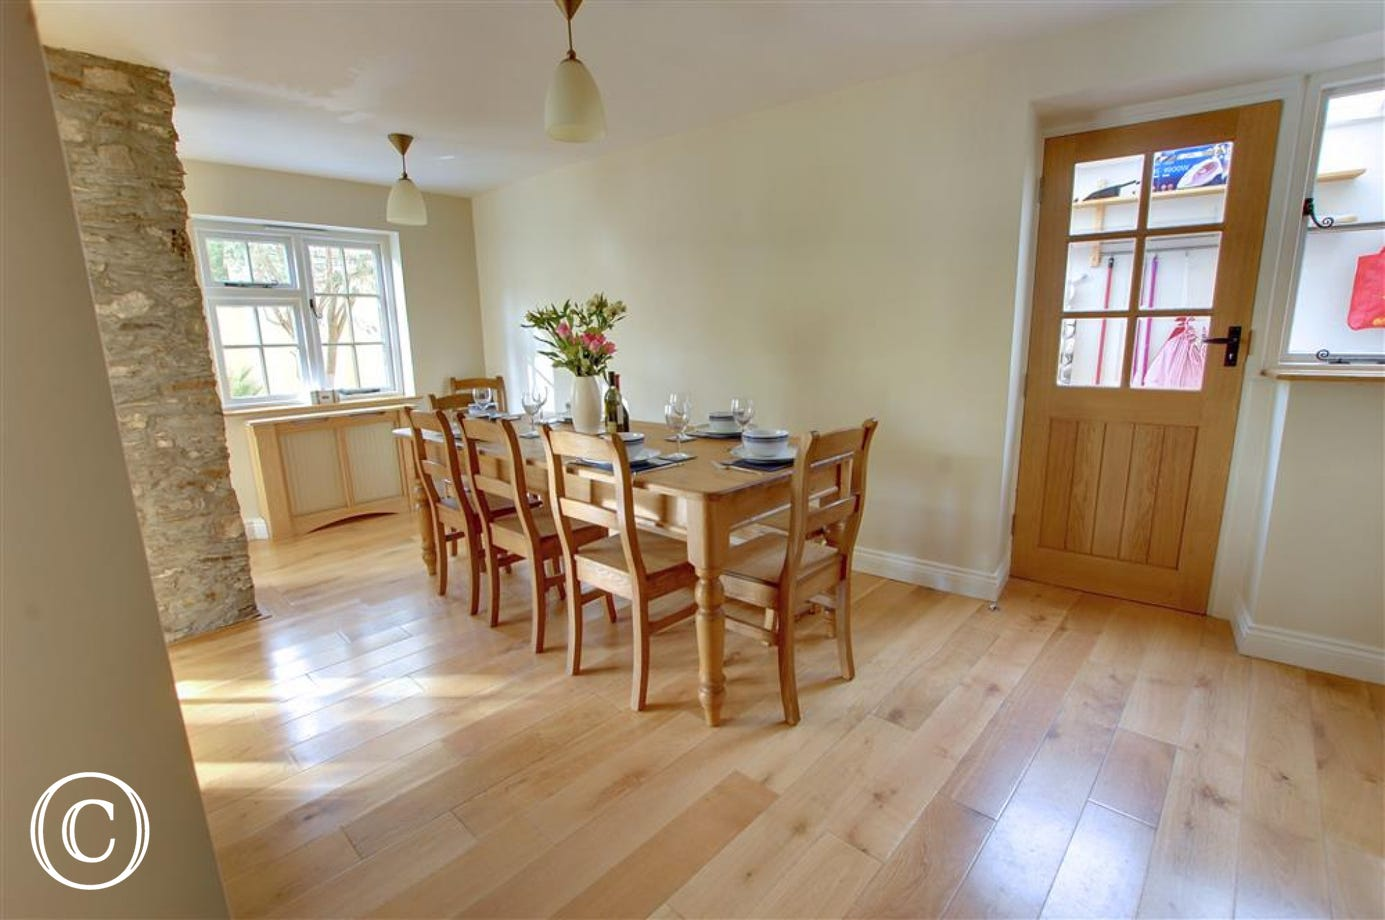 The lovely dining area, perfect for enjoying family meals together